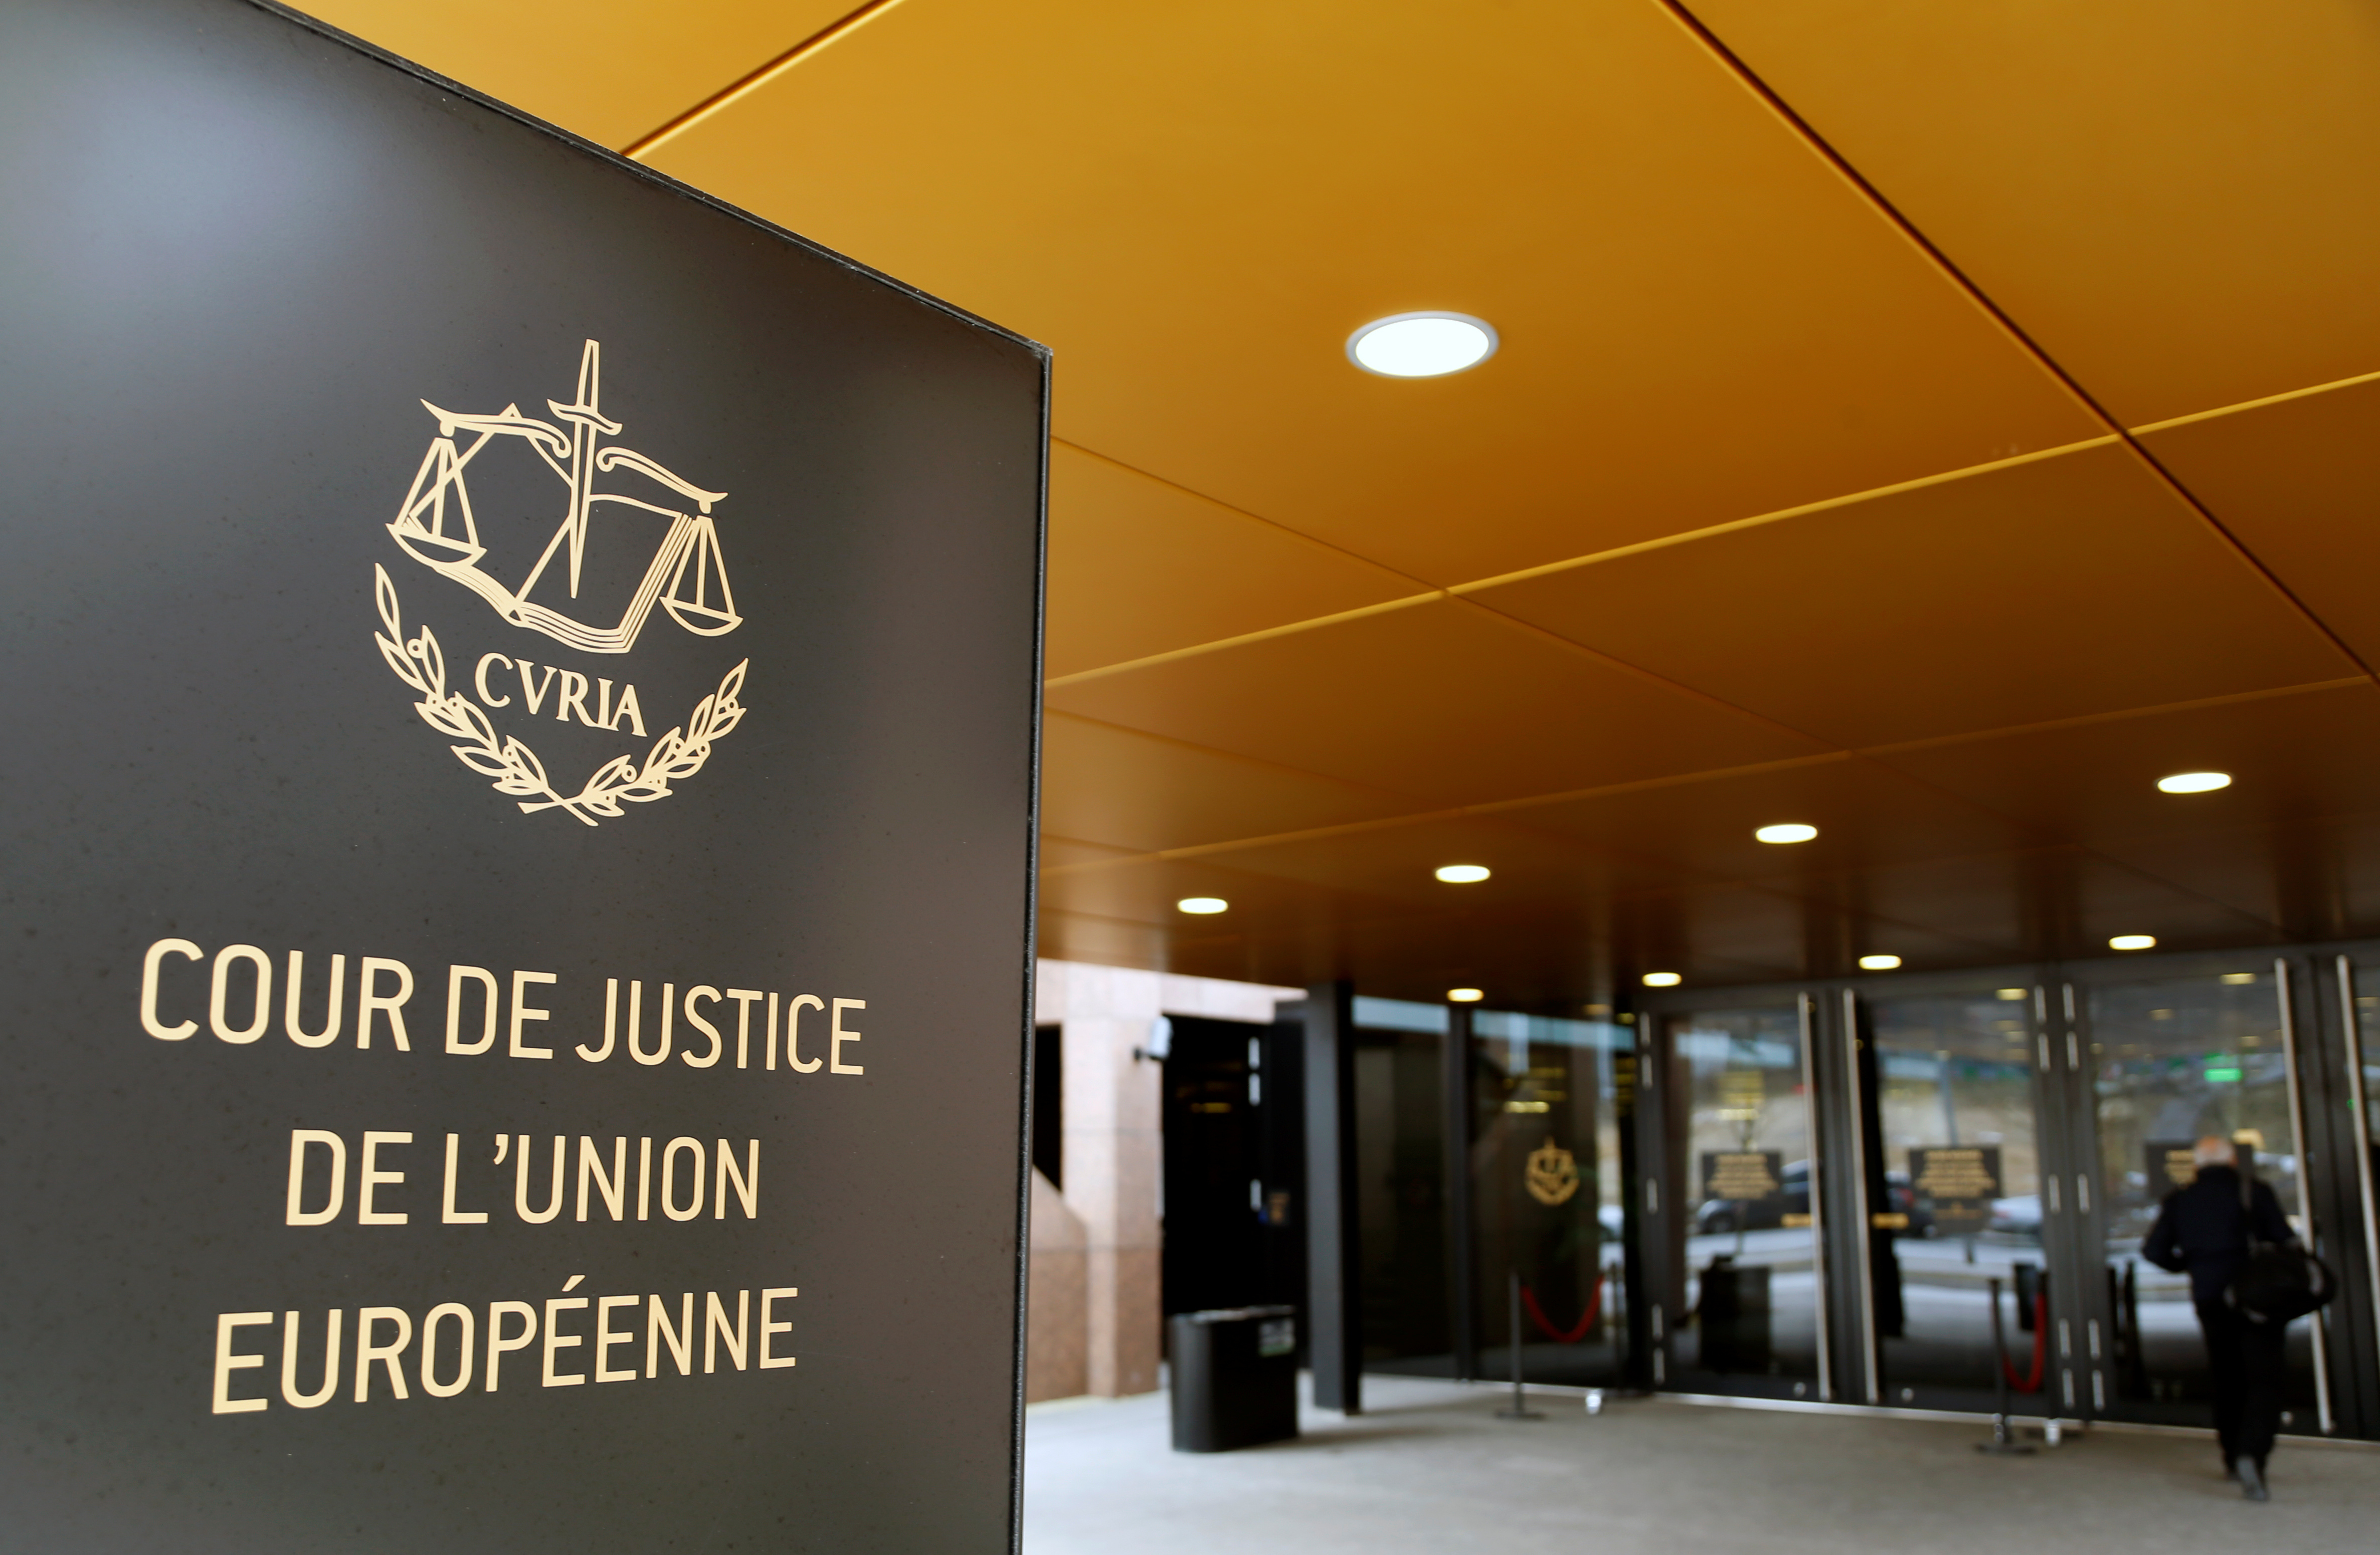 The entrance of the European Court of Justice is pictured in Luxembourg, January 26, 2017. PREUTERS/Francois Lenoir